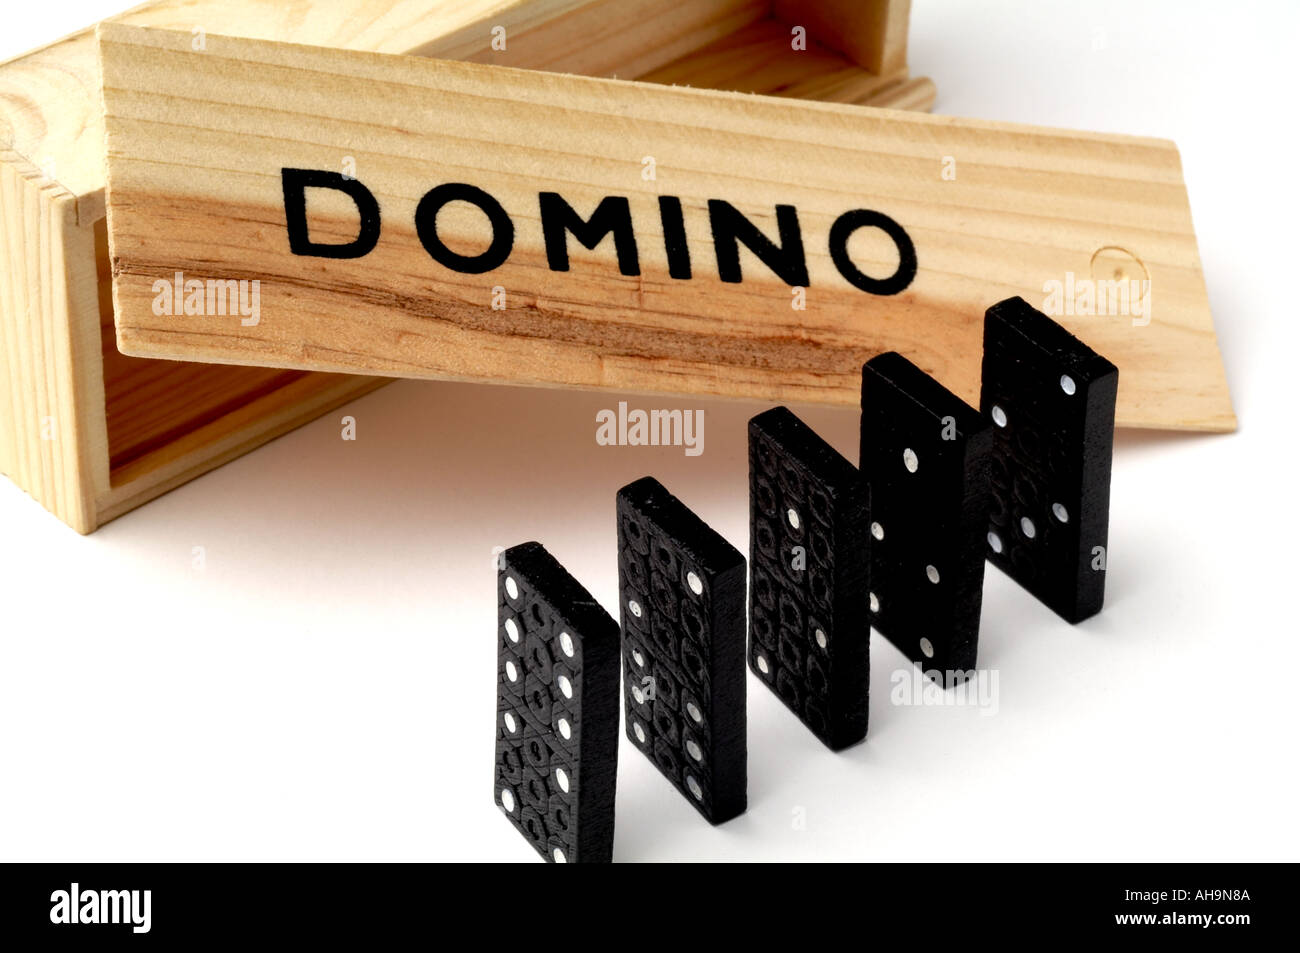 domino dominos effect cause and reaction knock over like cause and stock photo domino dominos effect cause and reaction knock over like cause and effect chain reaction game spots pub games fall fall over fel